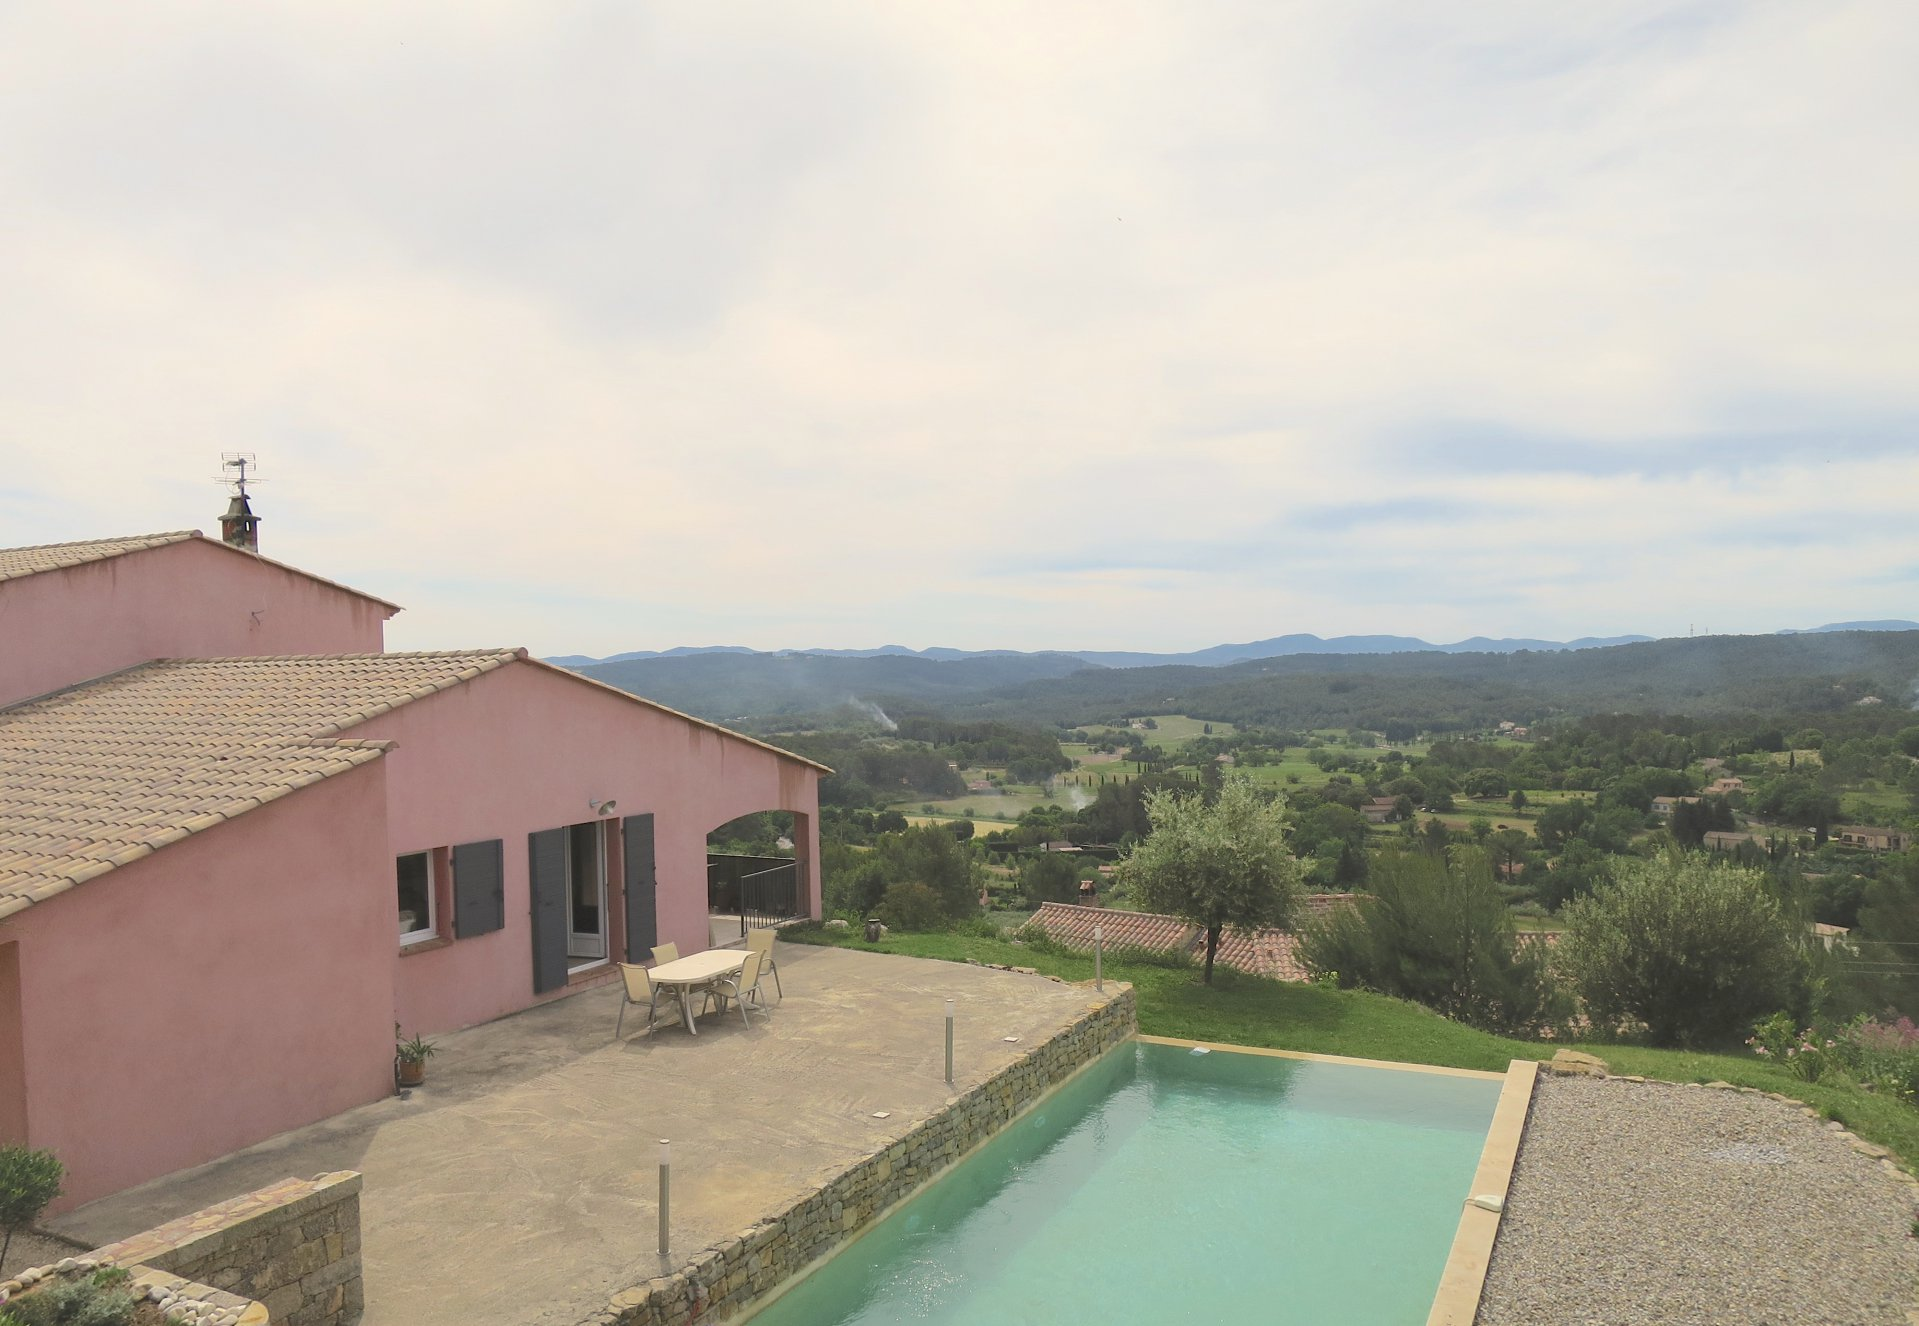 Villa with pool and panoramic view over Lorgues